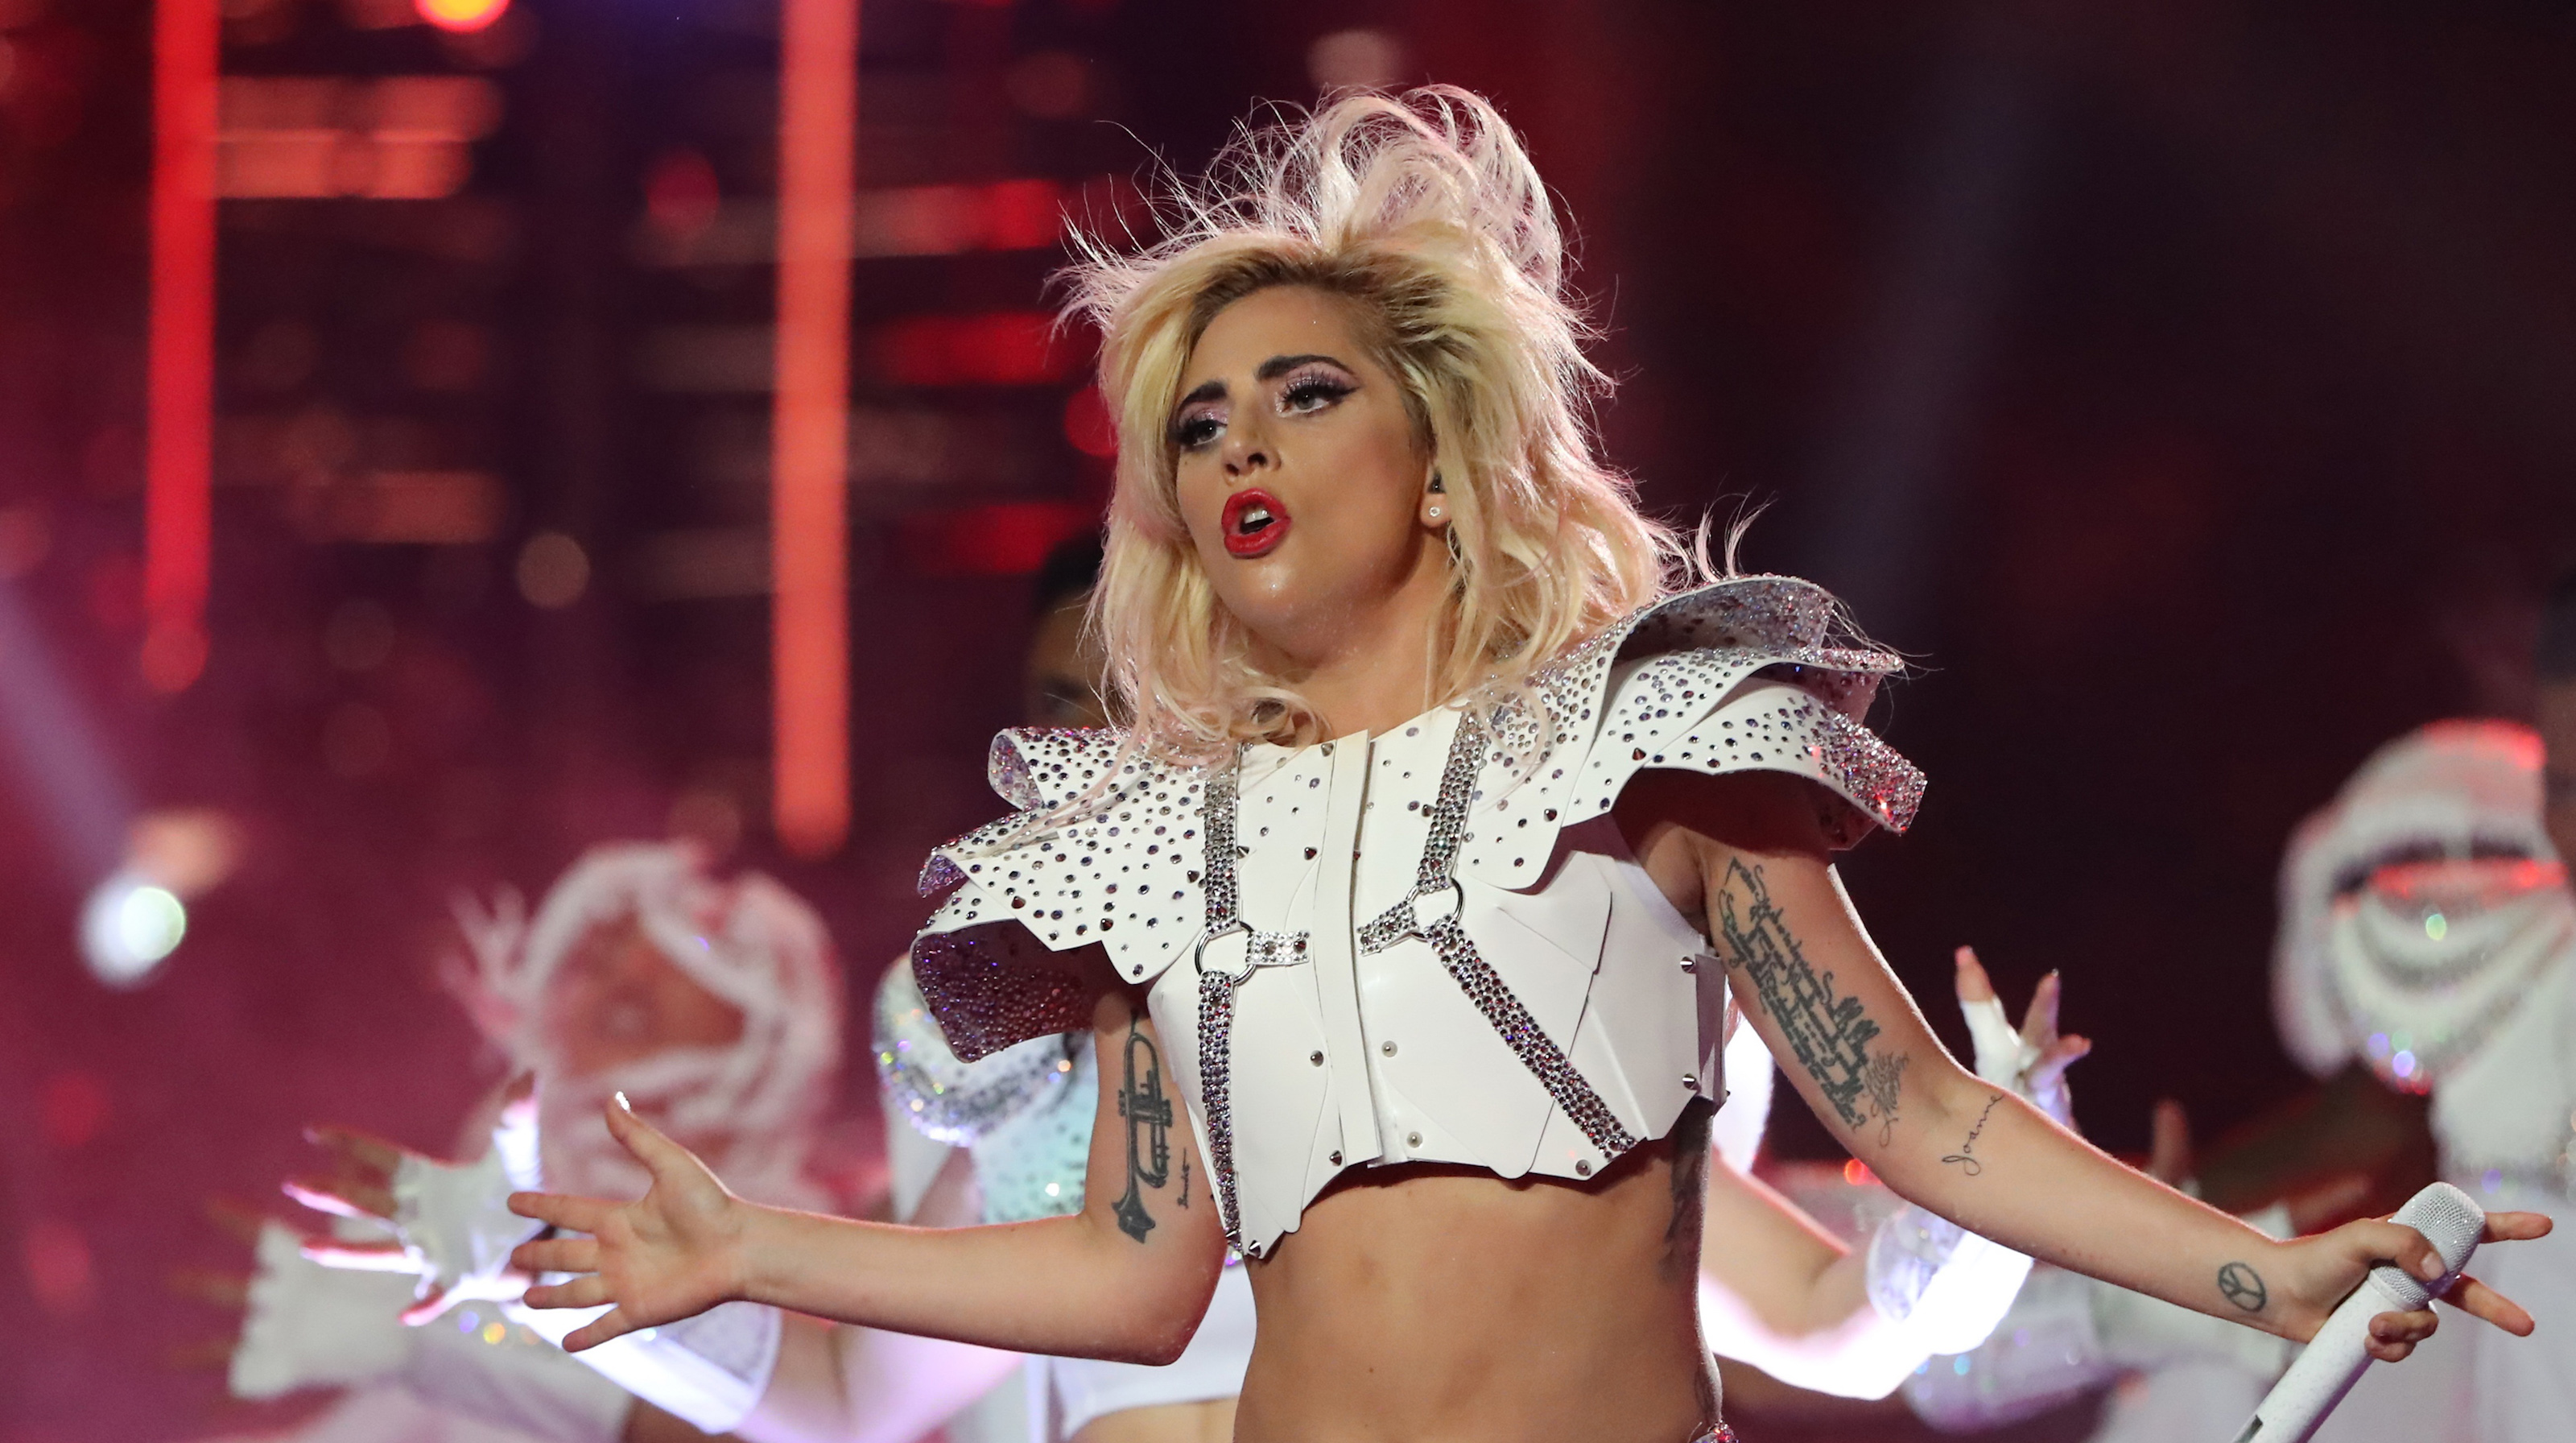 Singer Lady Gaga performs during the halftime show at Super Bowl LI between the New England Patriots and the Atlanta Falcons in Houston, Texas, U.S., February 5, 2017. REUTERS/Adrees Latif - RTX2ZR2P